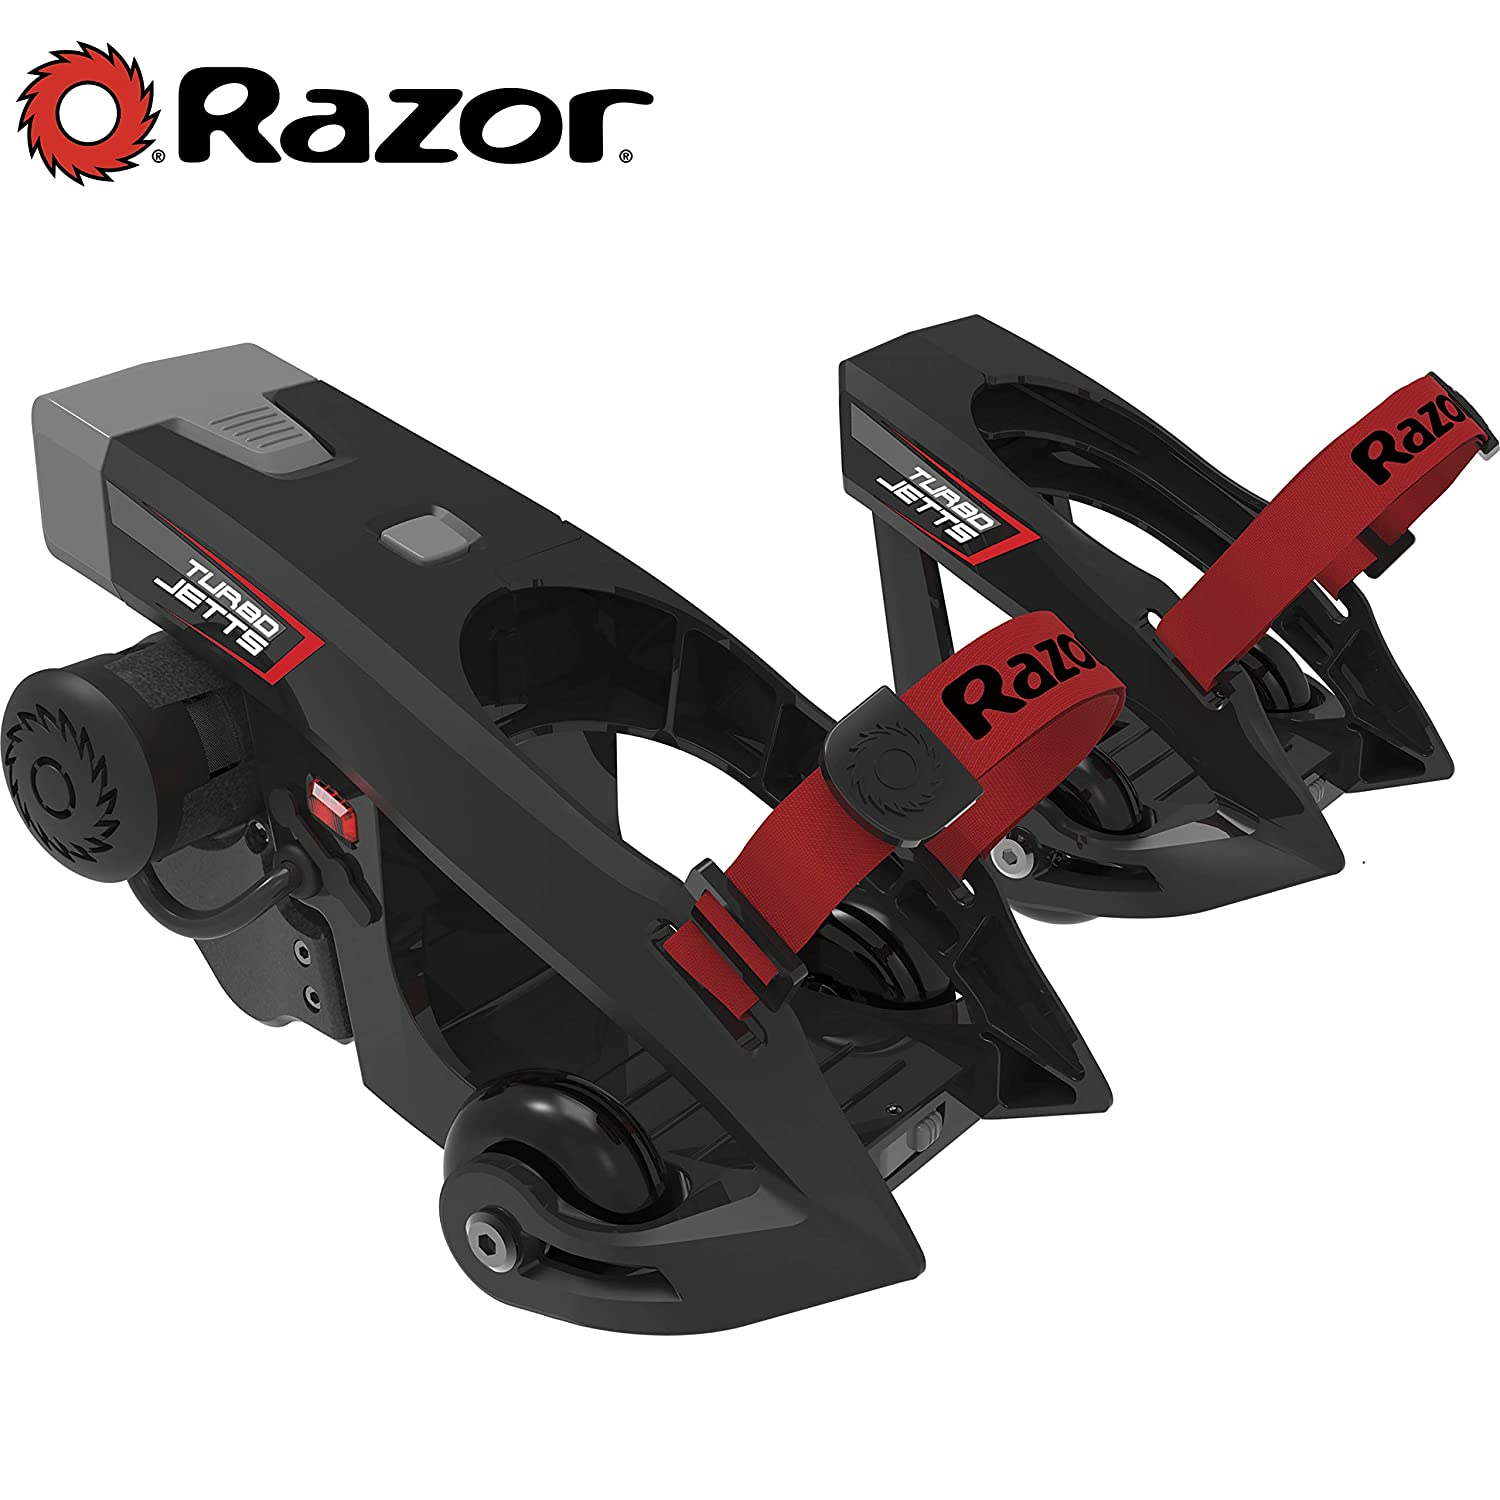 Amazon.com: Razor Turbo Jetts DLX, con luces LED azules ...